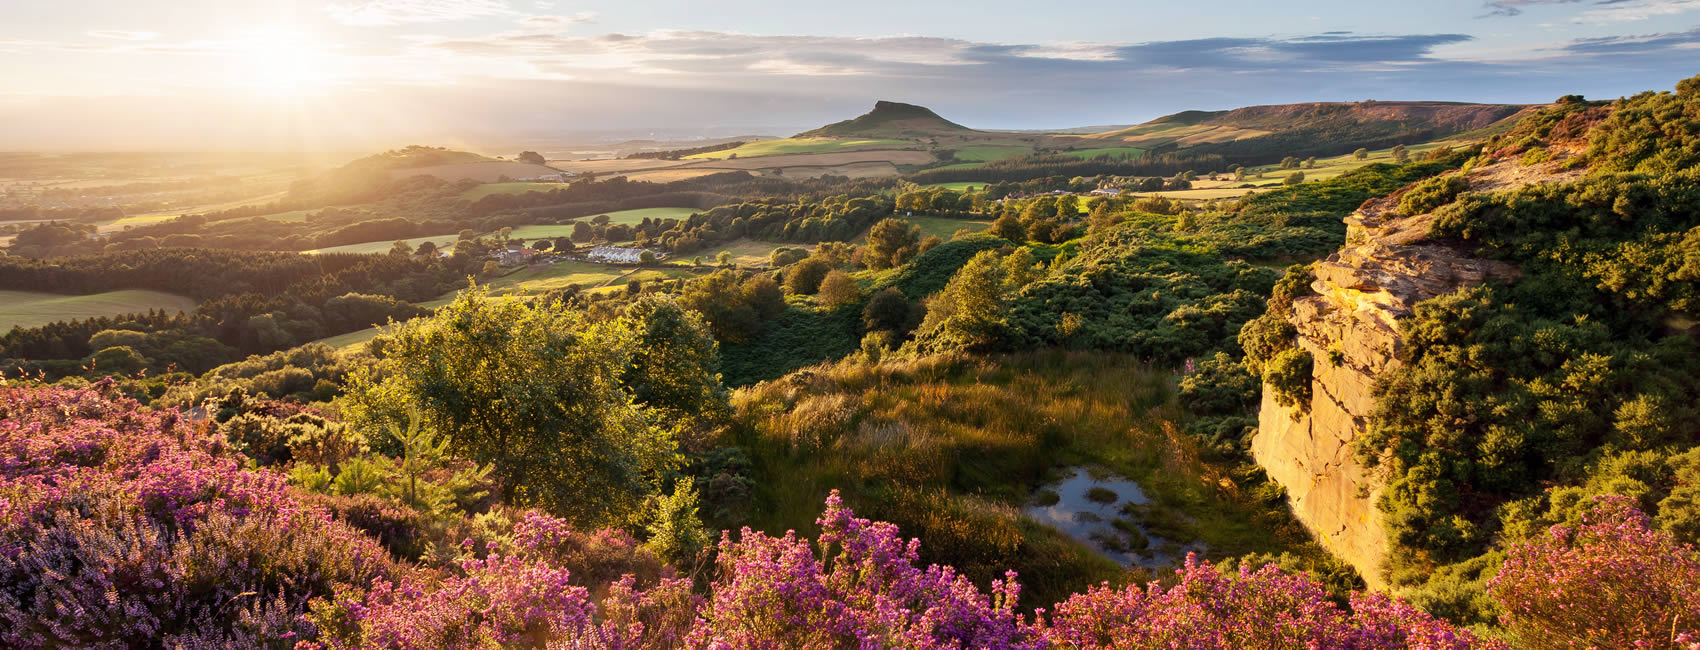 North York Moors national park in England